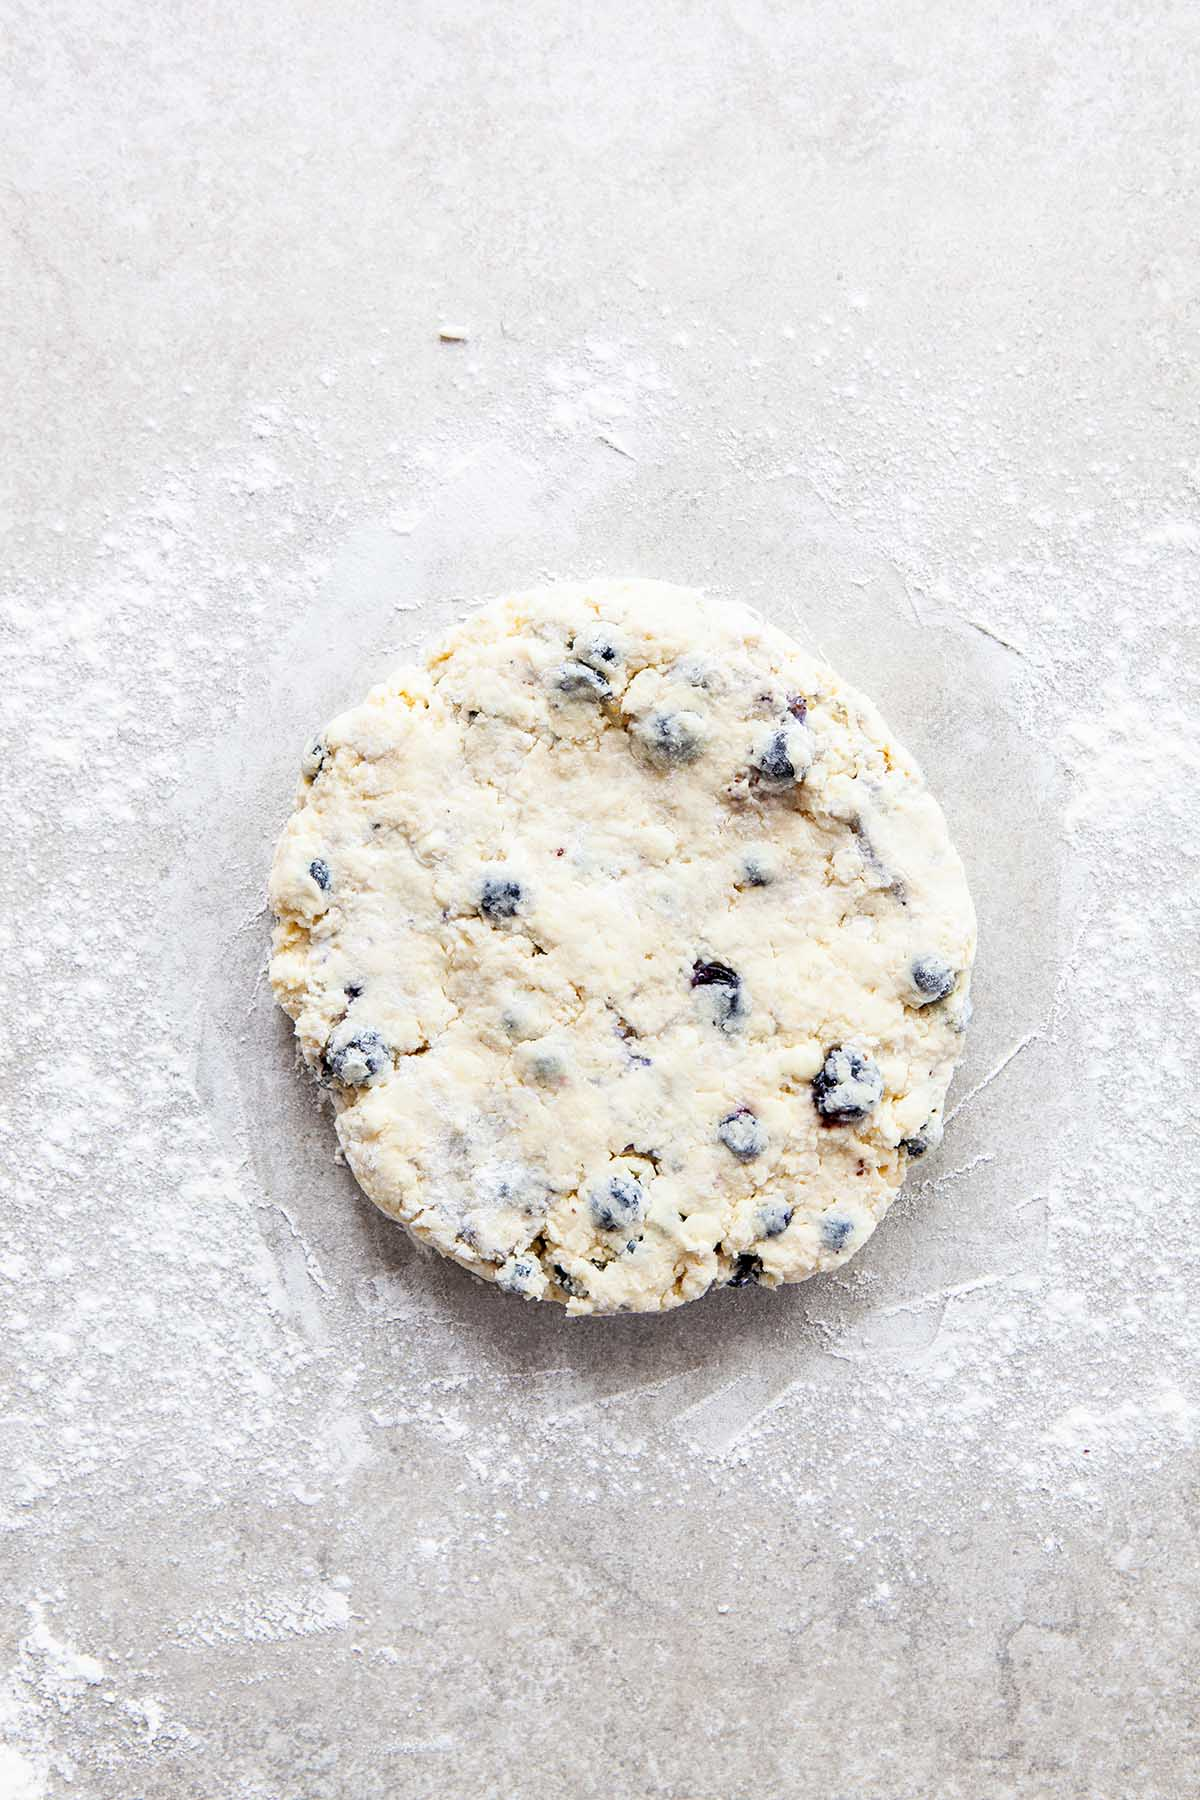 A round disc of unbaked scone dough on a floured stone surface.